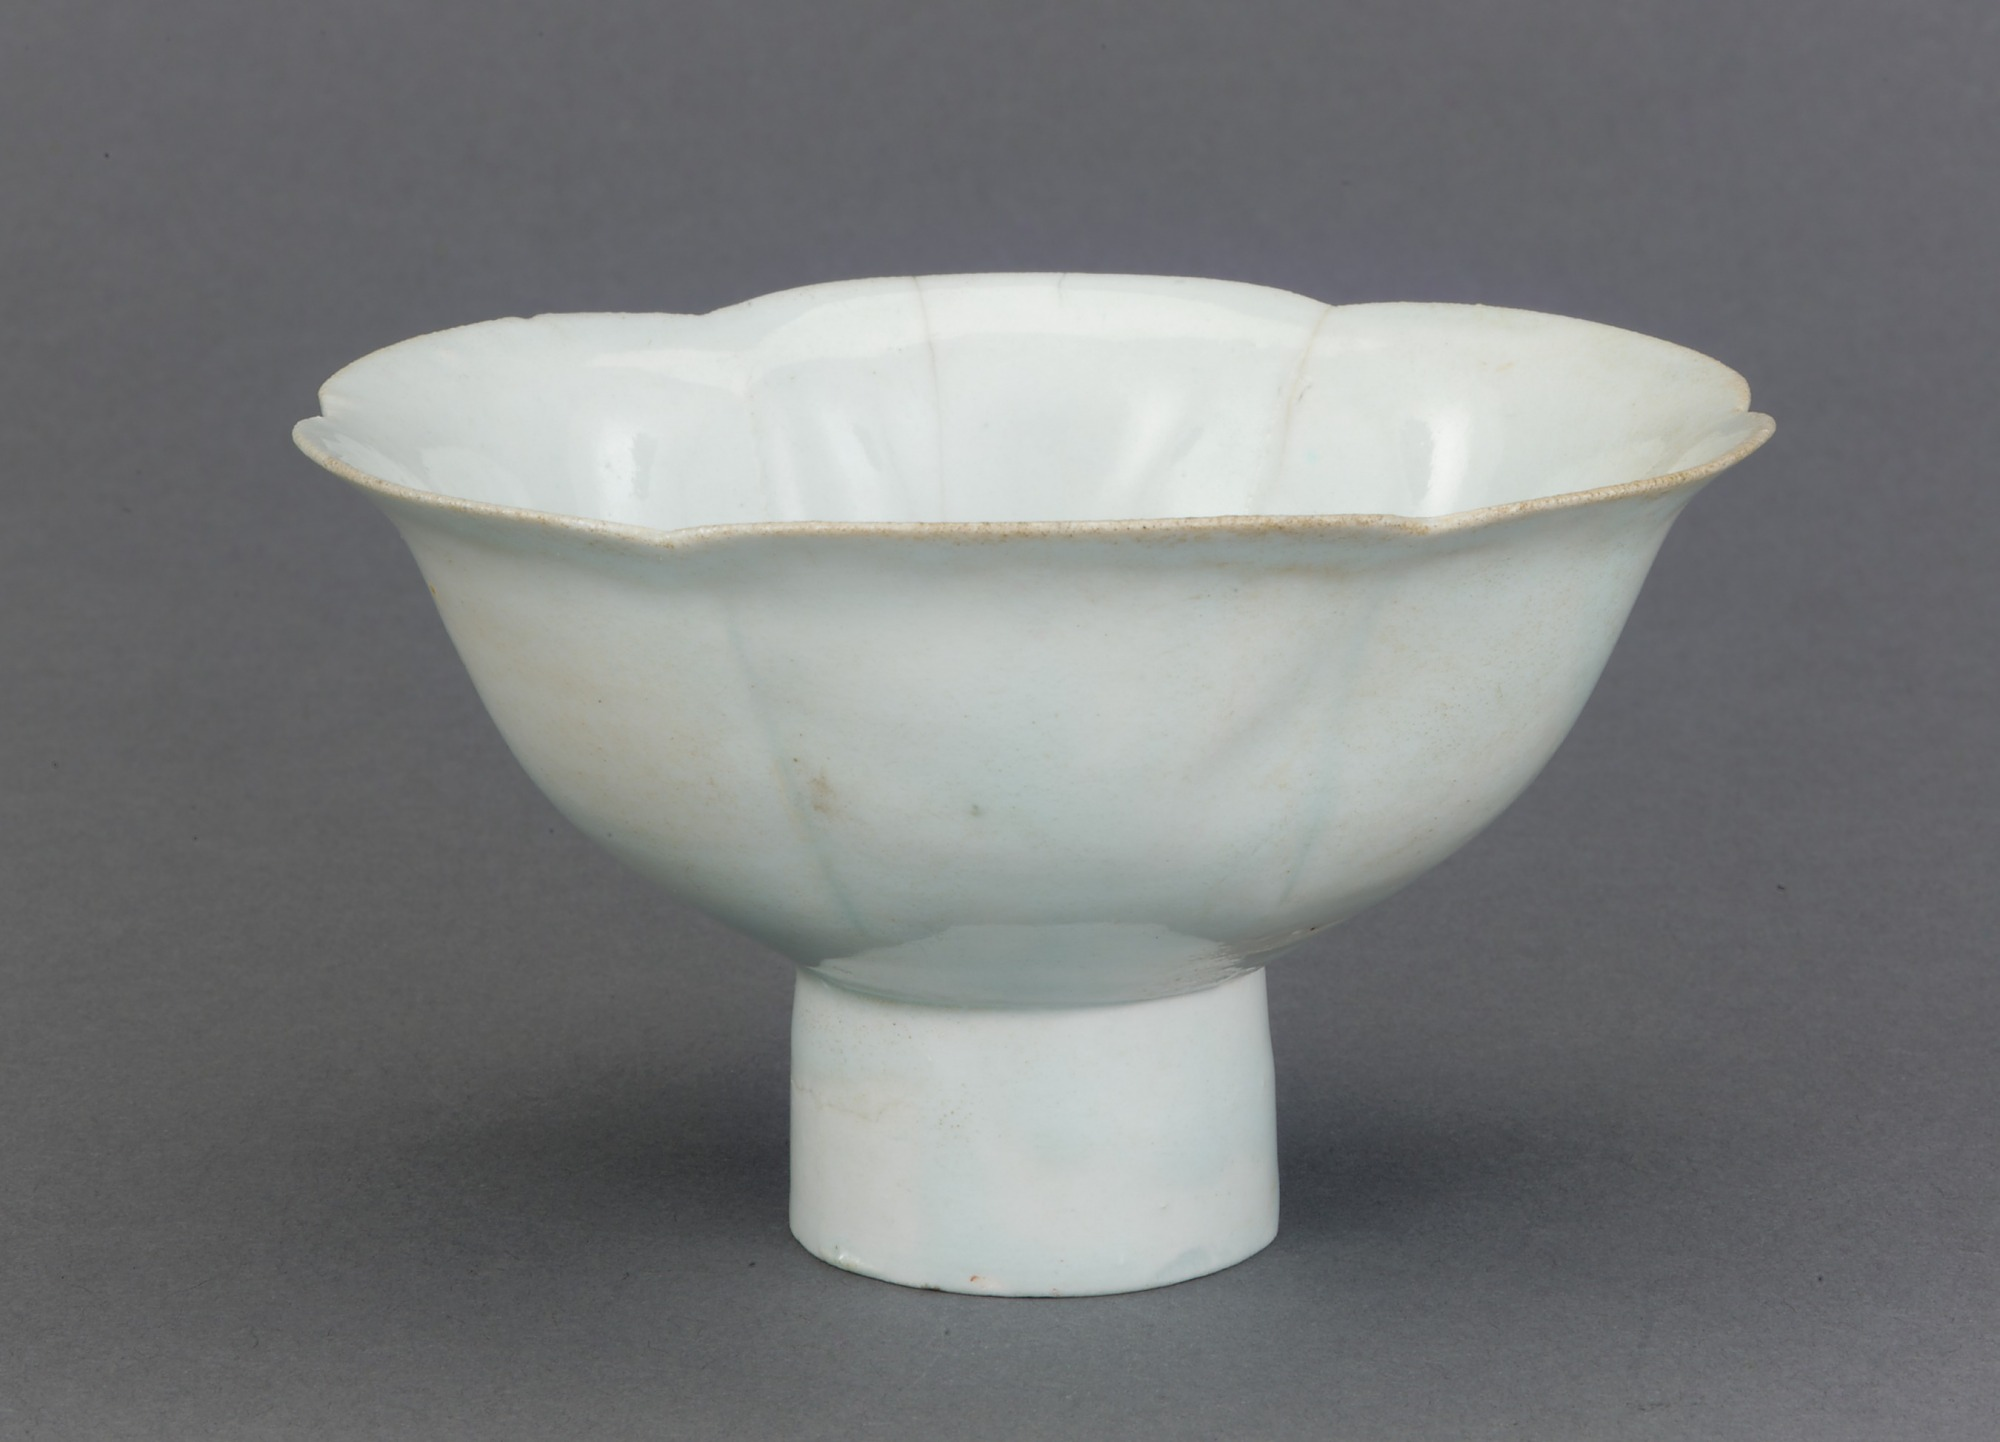 profile: Bowl with foliate rim and tall foot